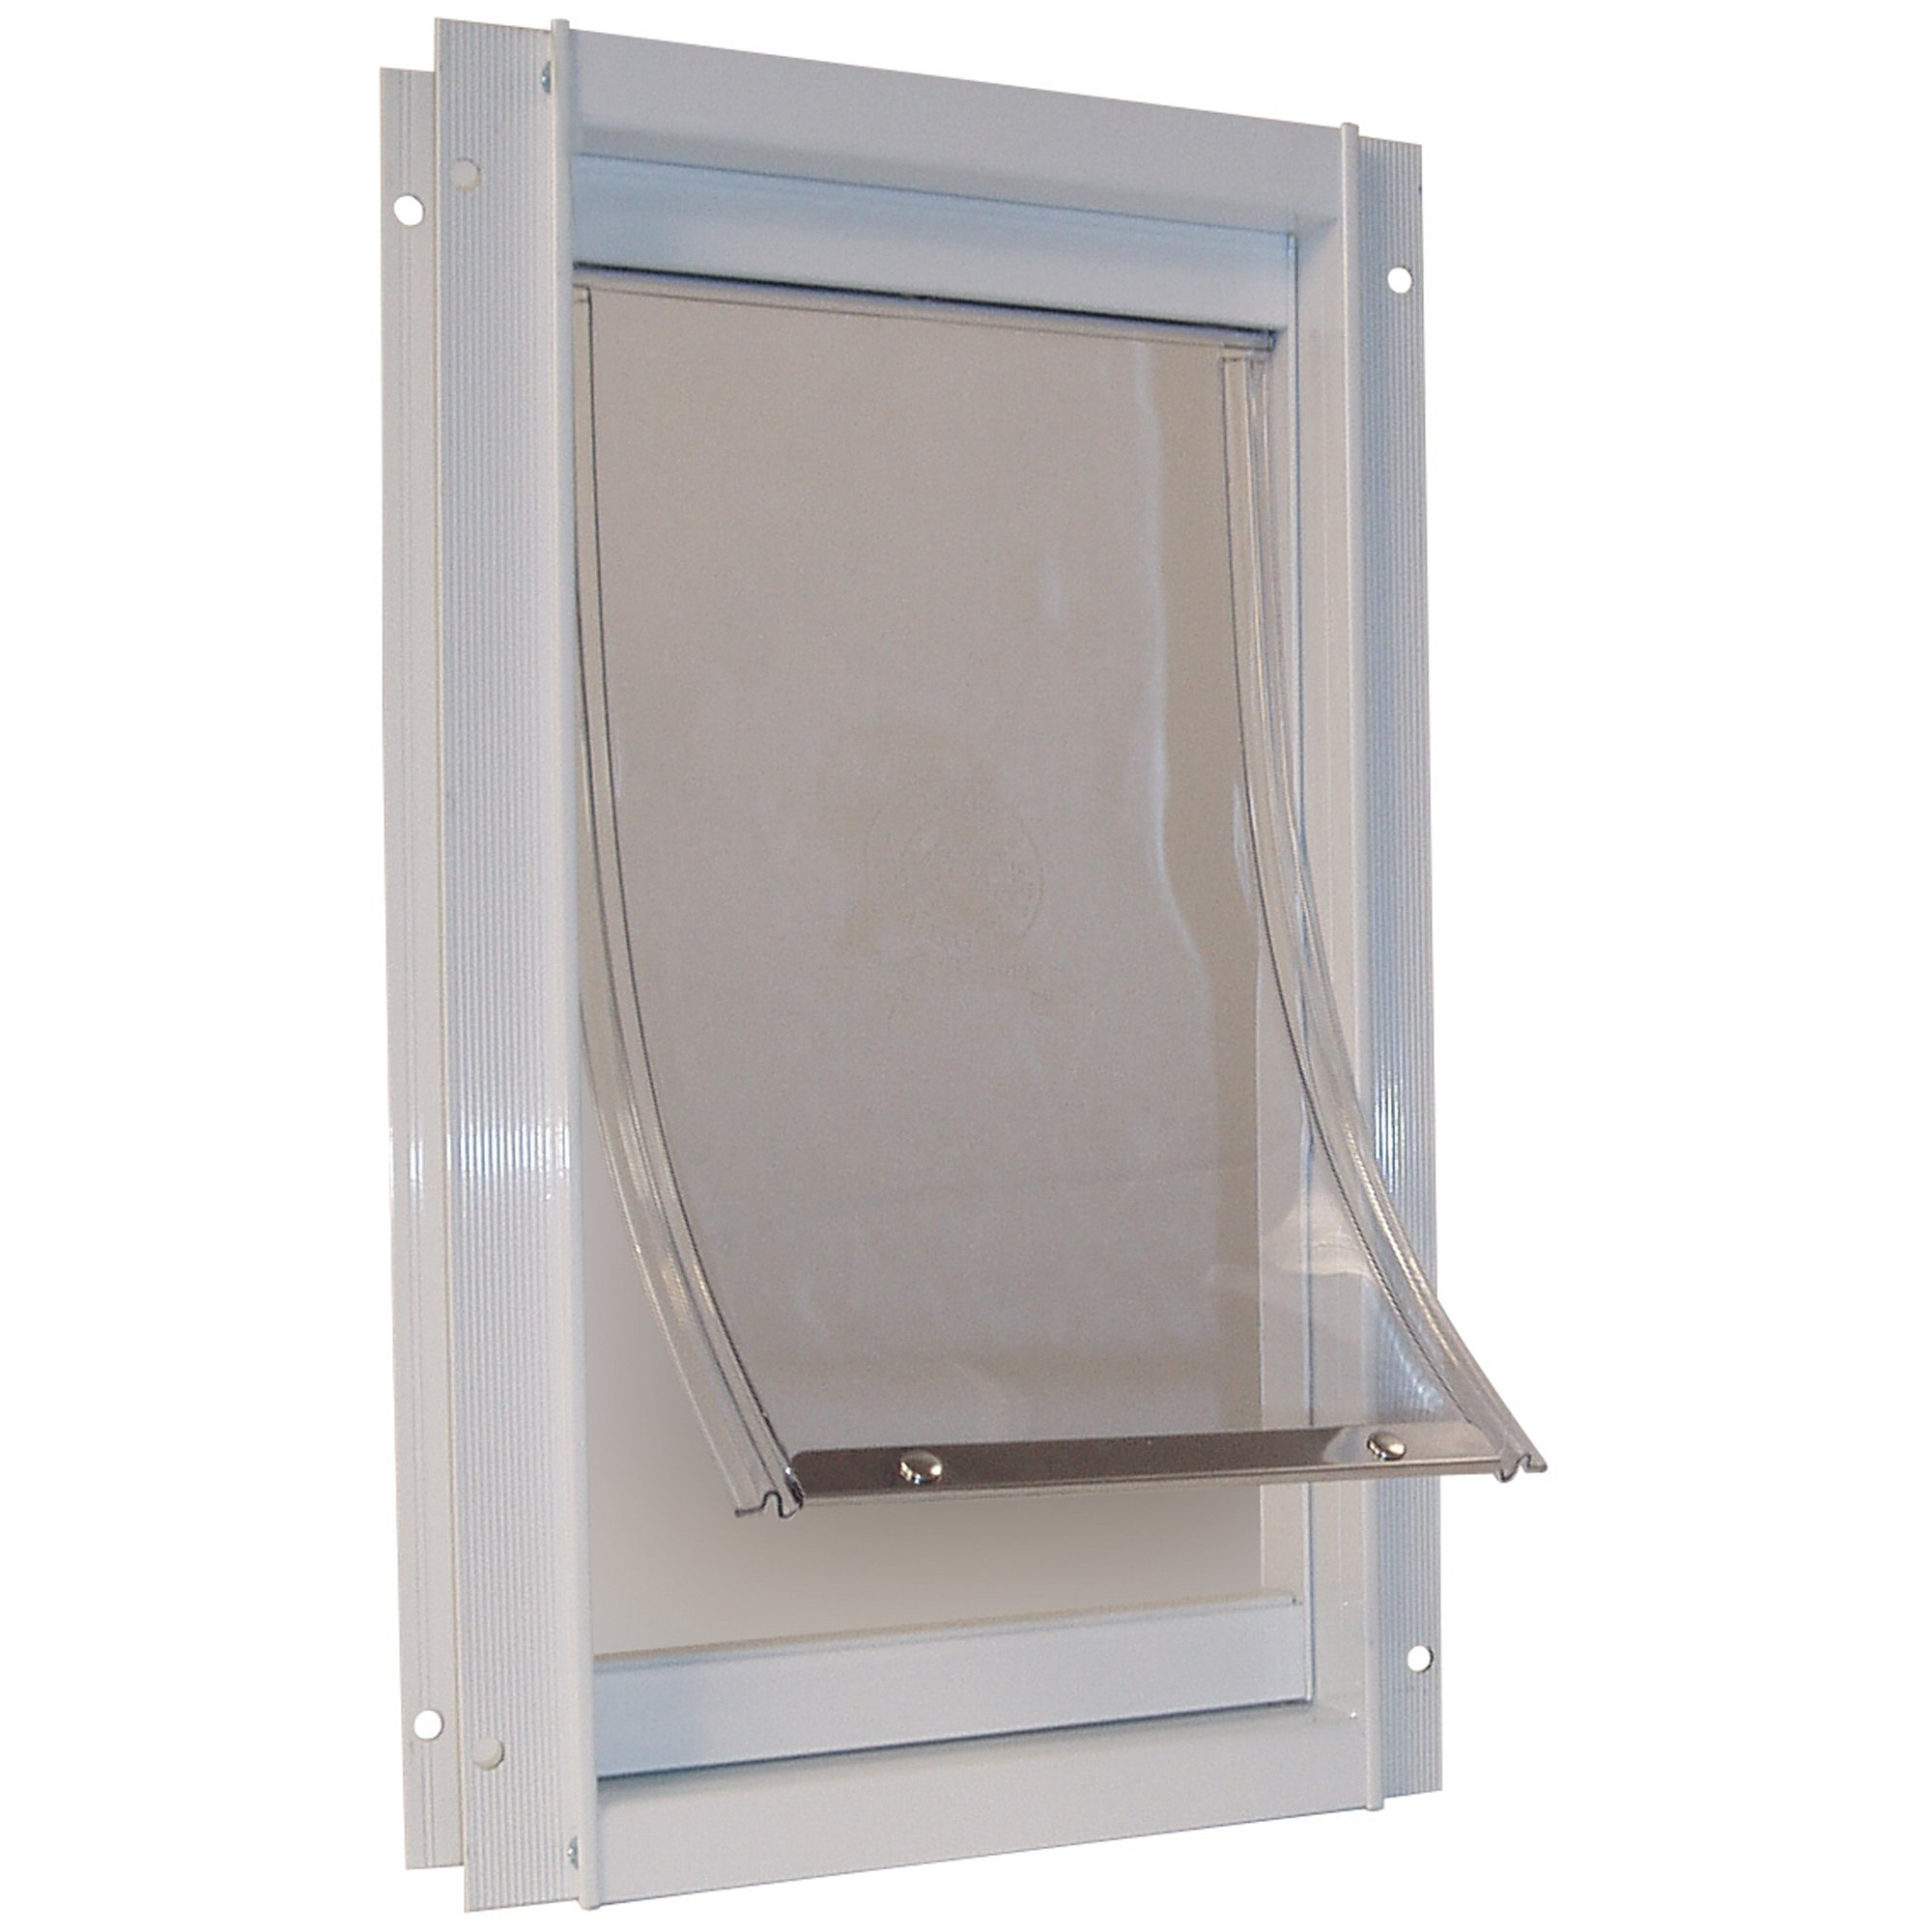 Perfect Pet Deluxe Aluminum Pet Door in White 12.8125IN x 2.125IN x 18.75IN XLarge